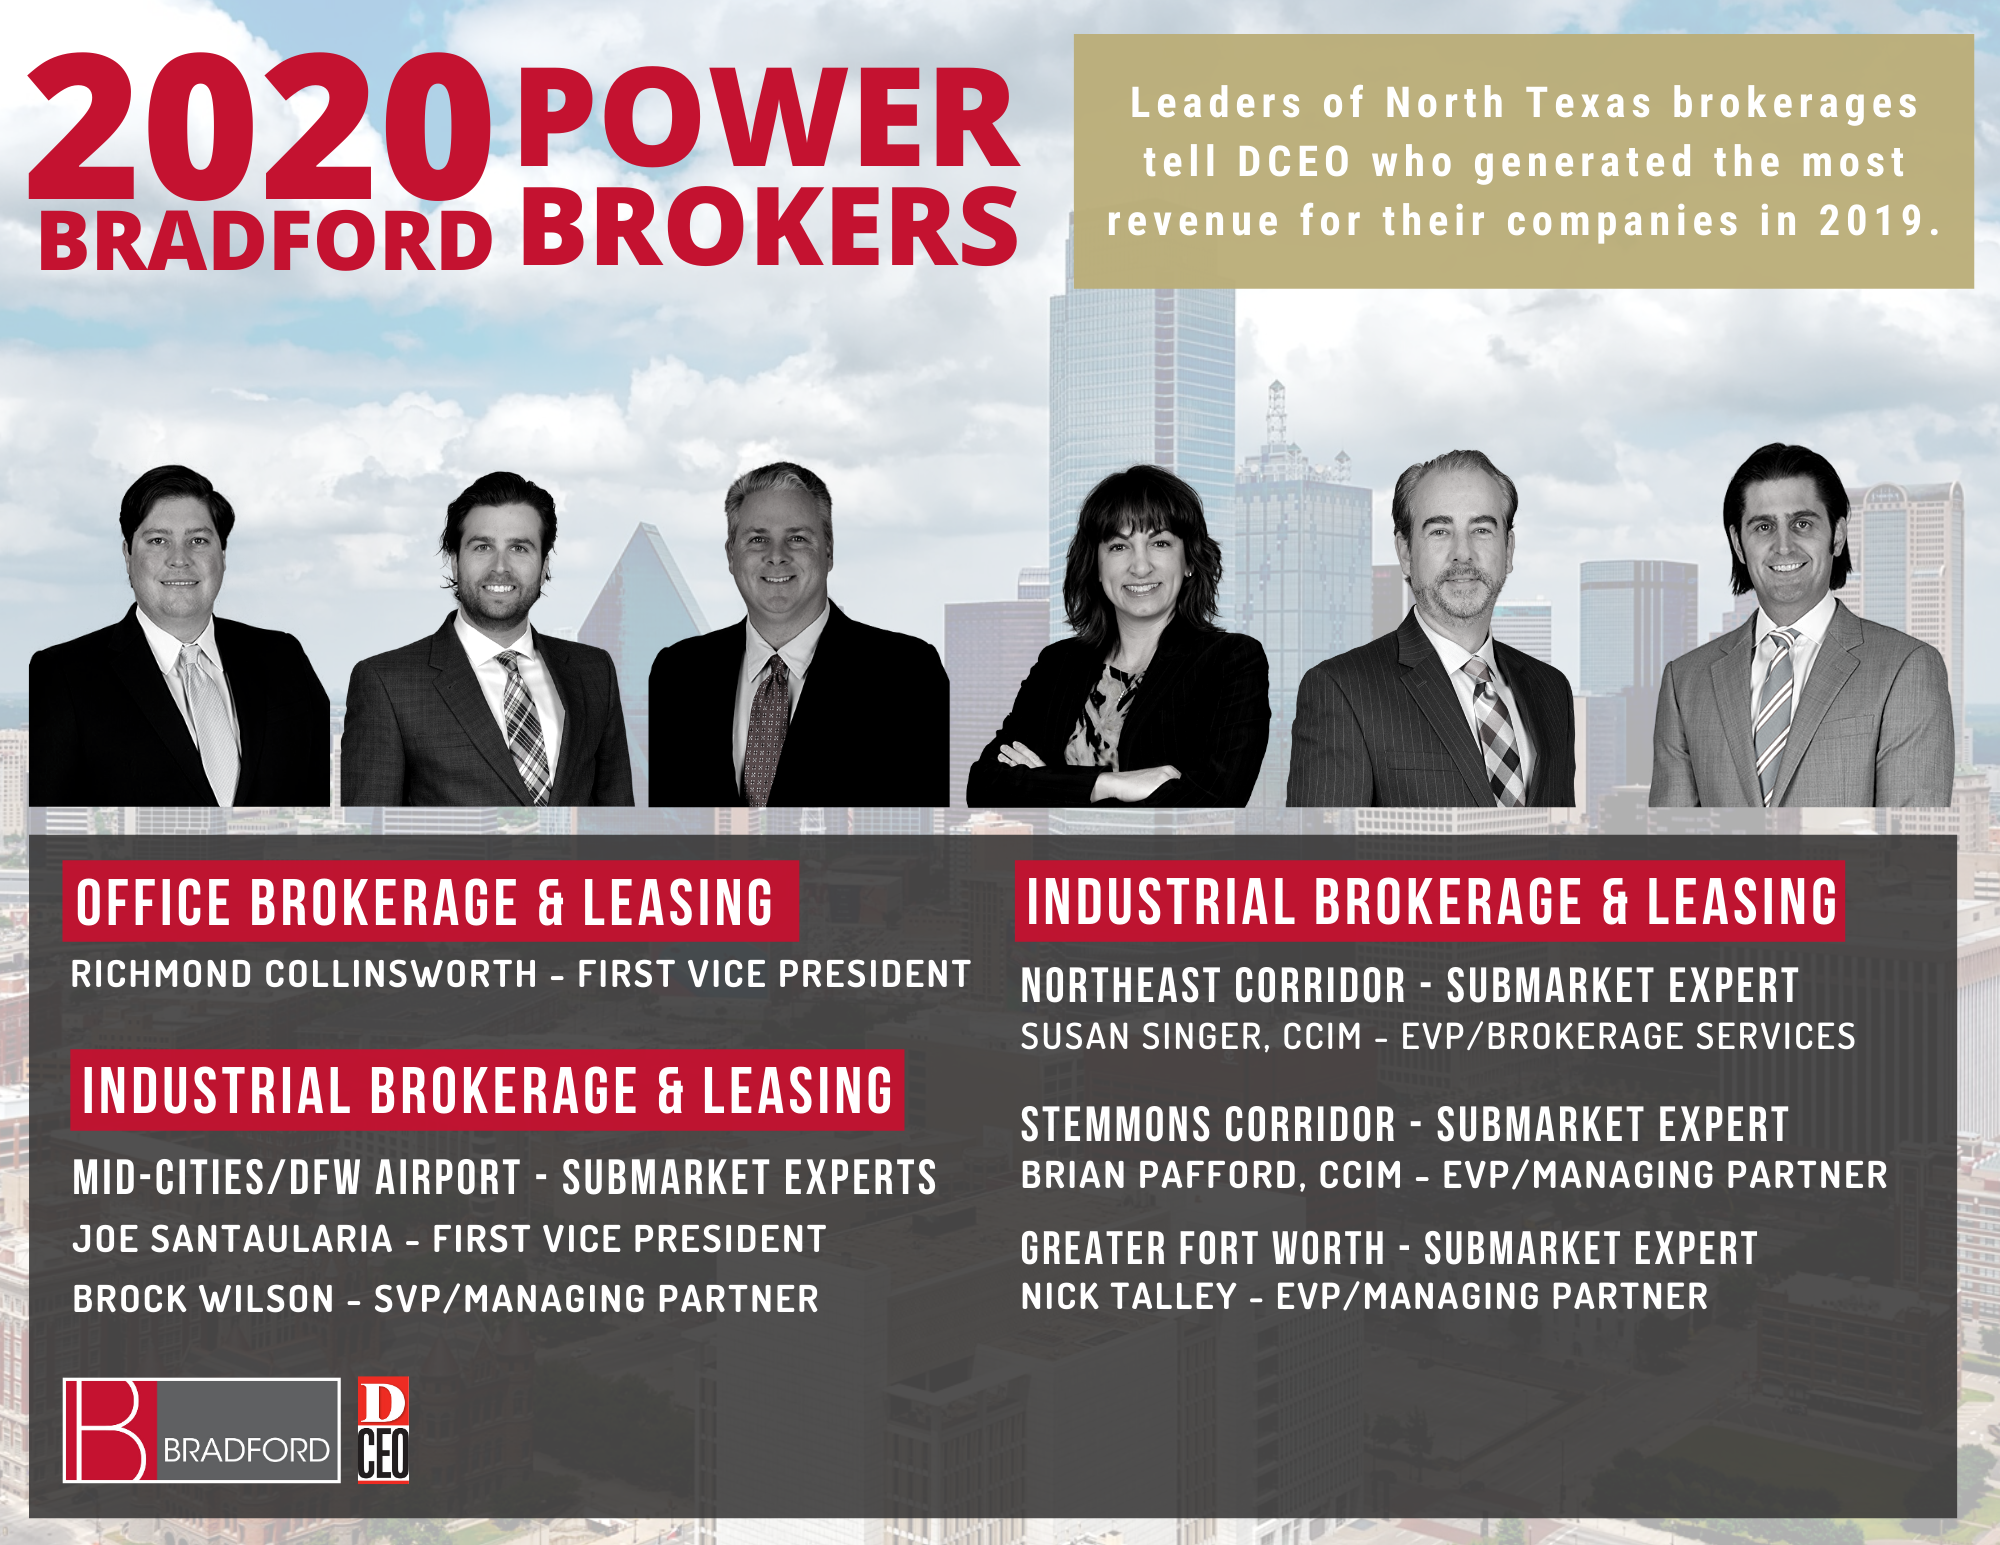 DCEO 2020 Power Brokers Flyer Option 2 1